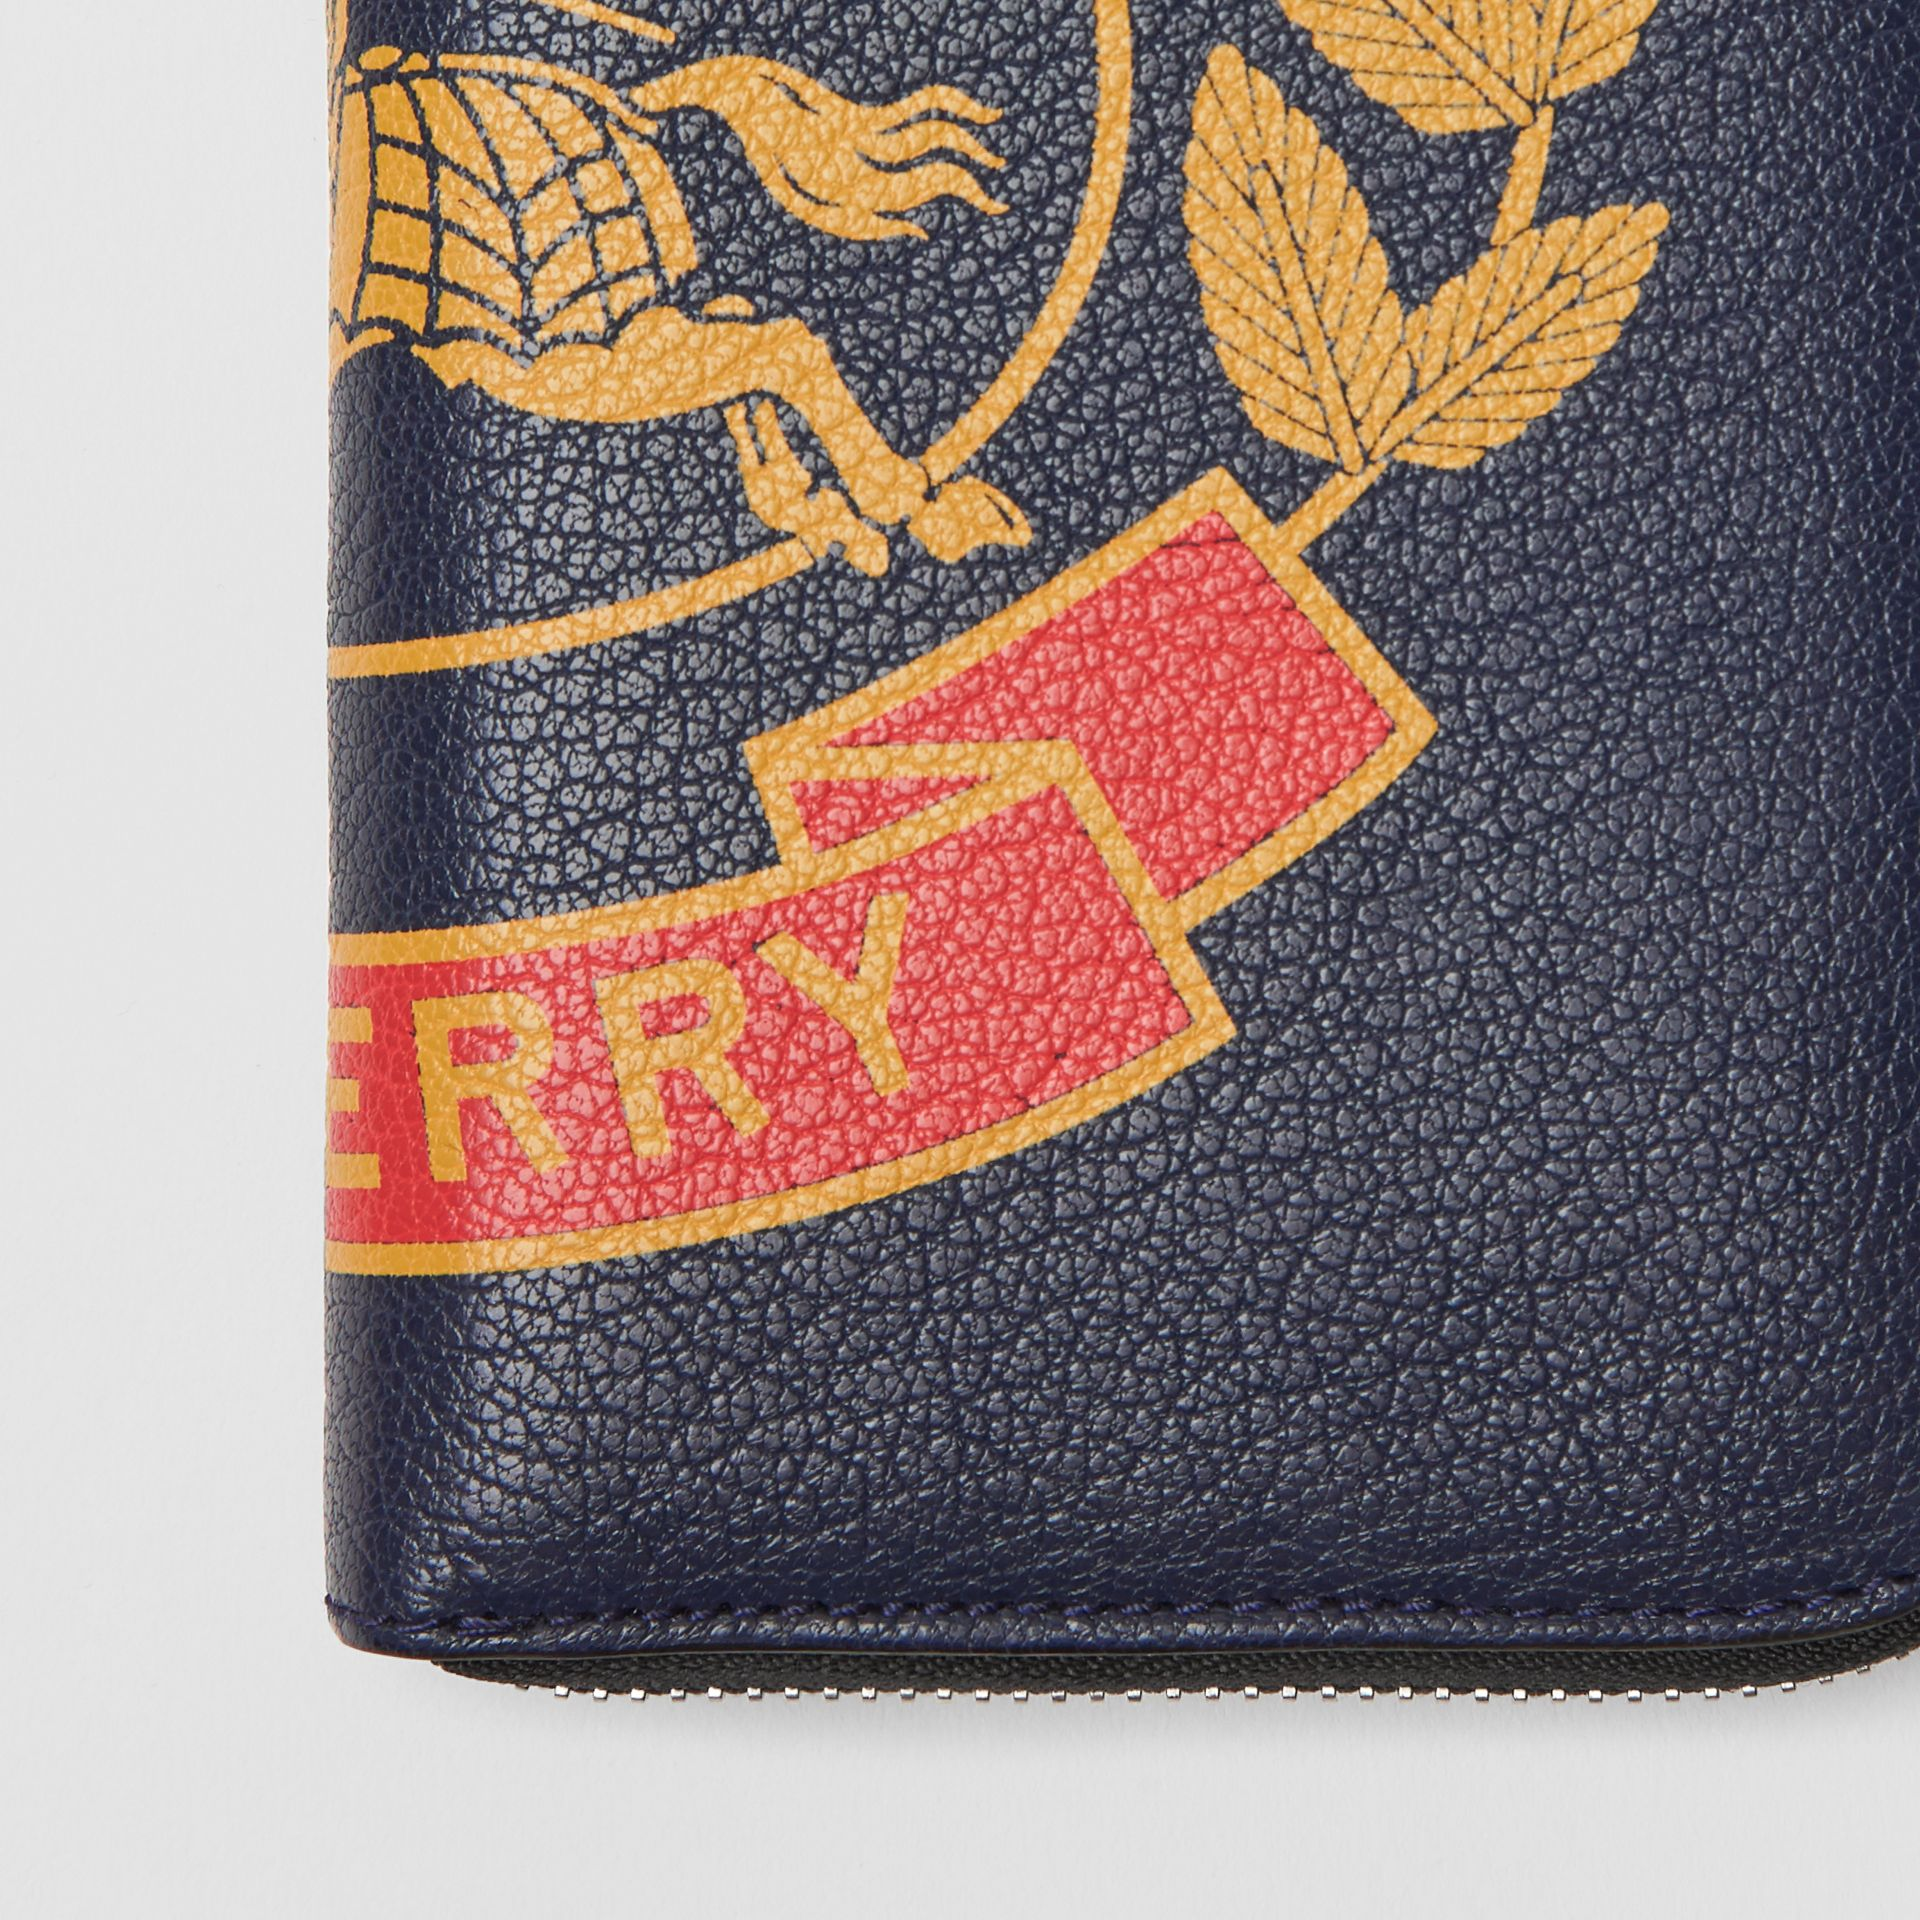 Crest Print Leather Ziparound Wallet in Storm Blue - Men | Burberry - gallery image 1